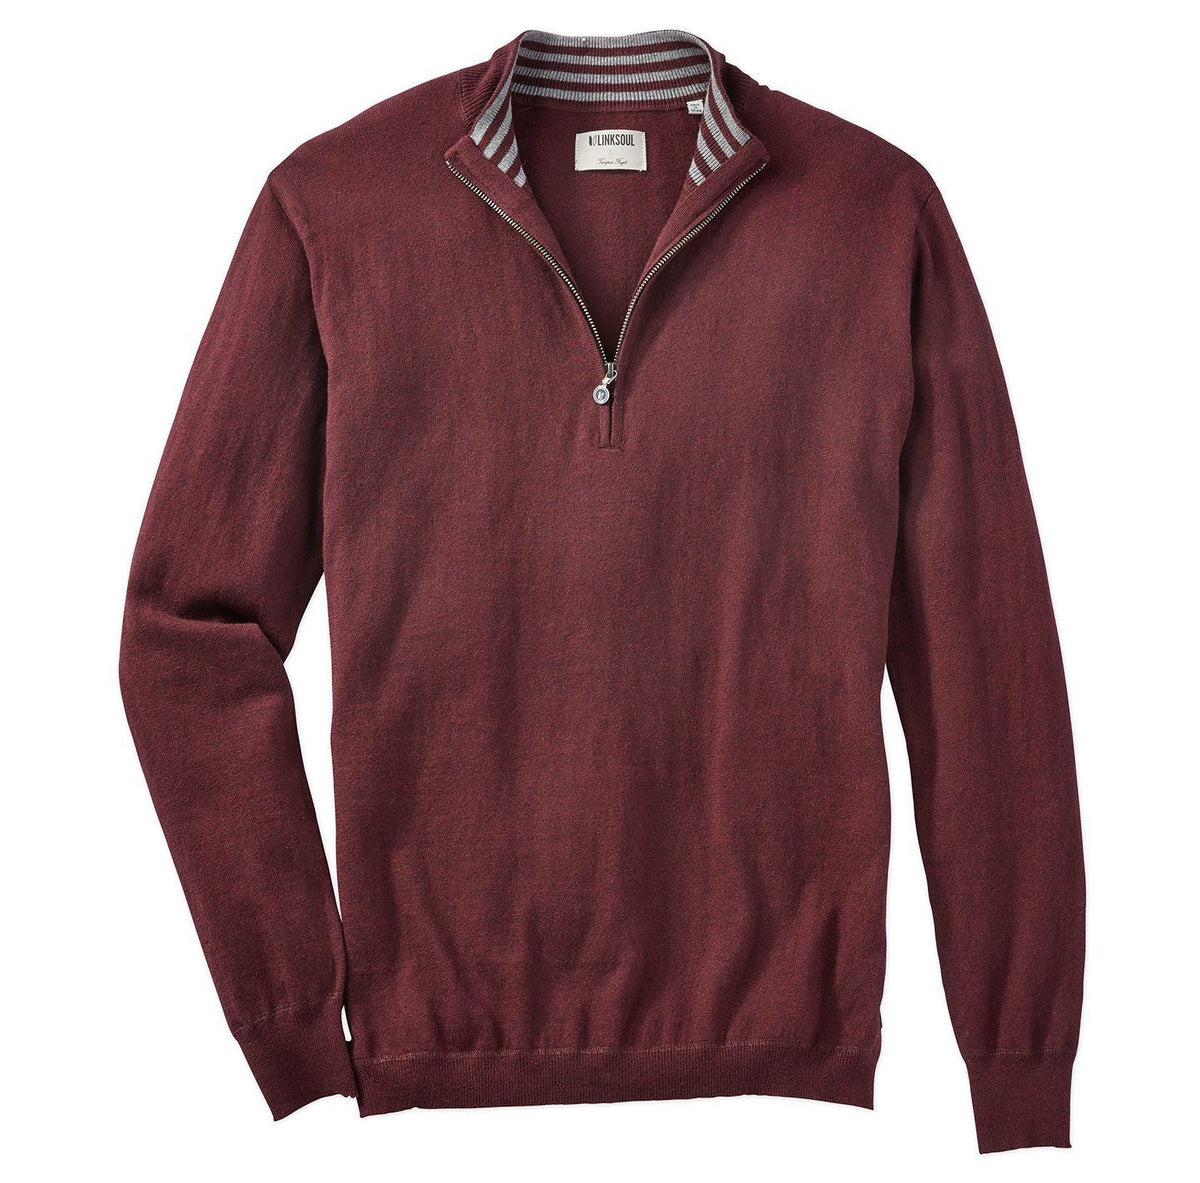 Cotton-Cashmere Quarter-Zip Sweater